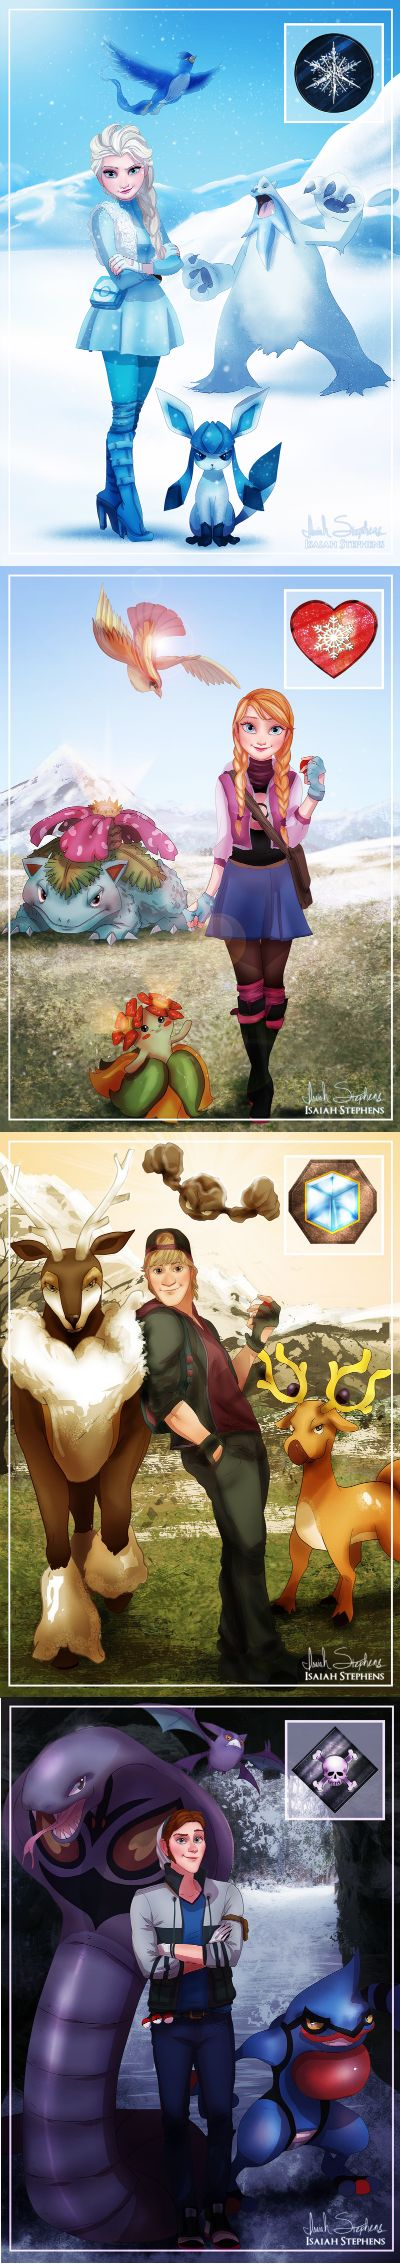 Arendelle as Next Pokémon Region • I'm not even into Pokemon, but this is pretty cool! :)